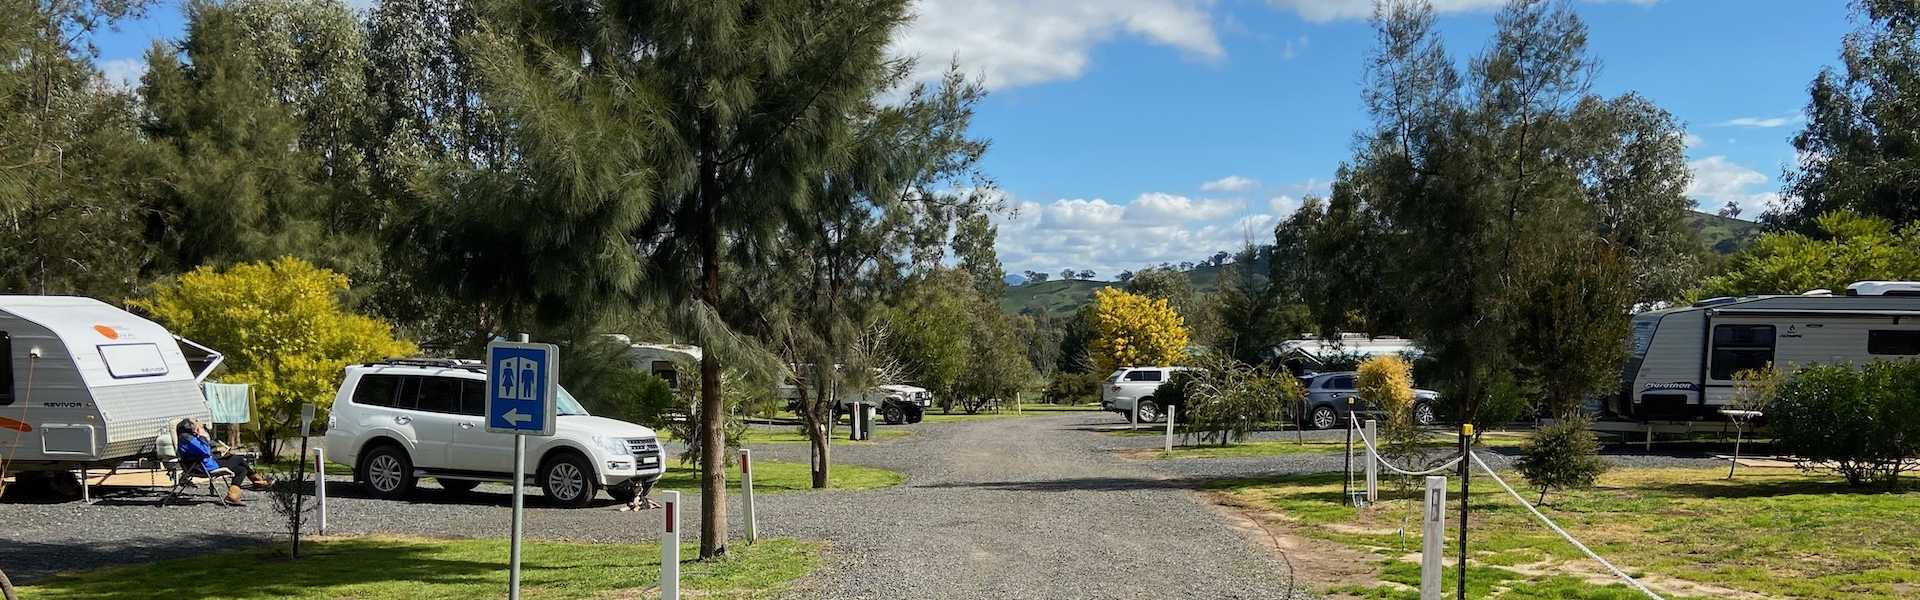 Kui Parks, Coolac Cabins & Camping